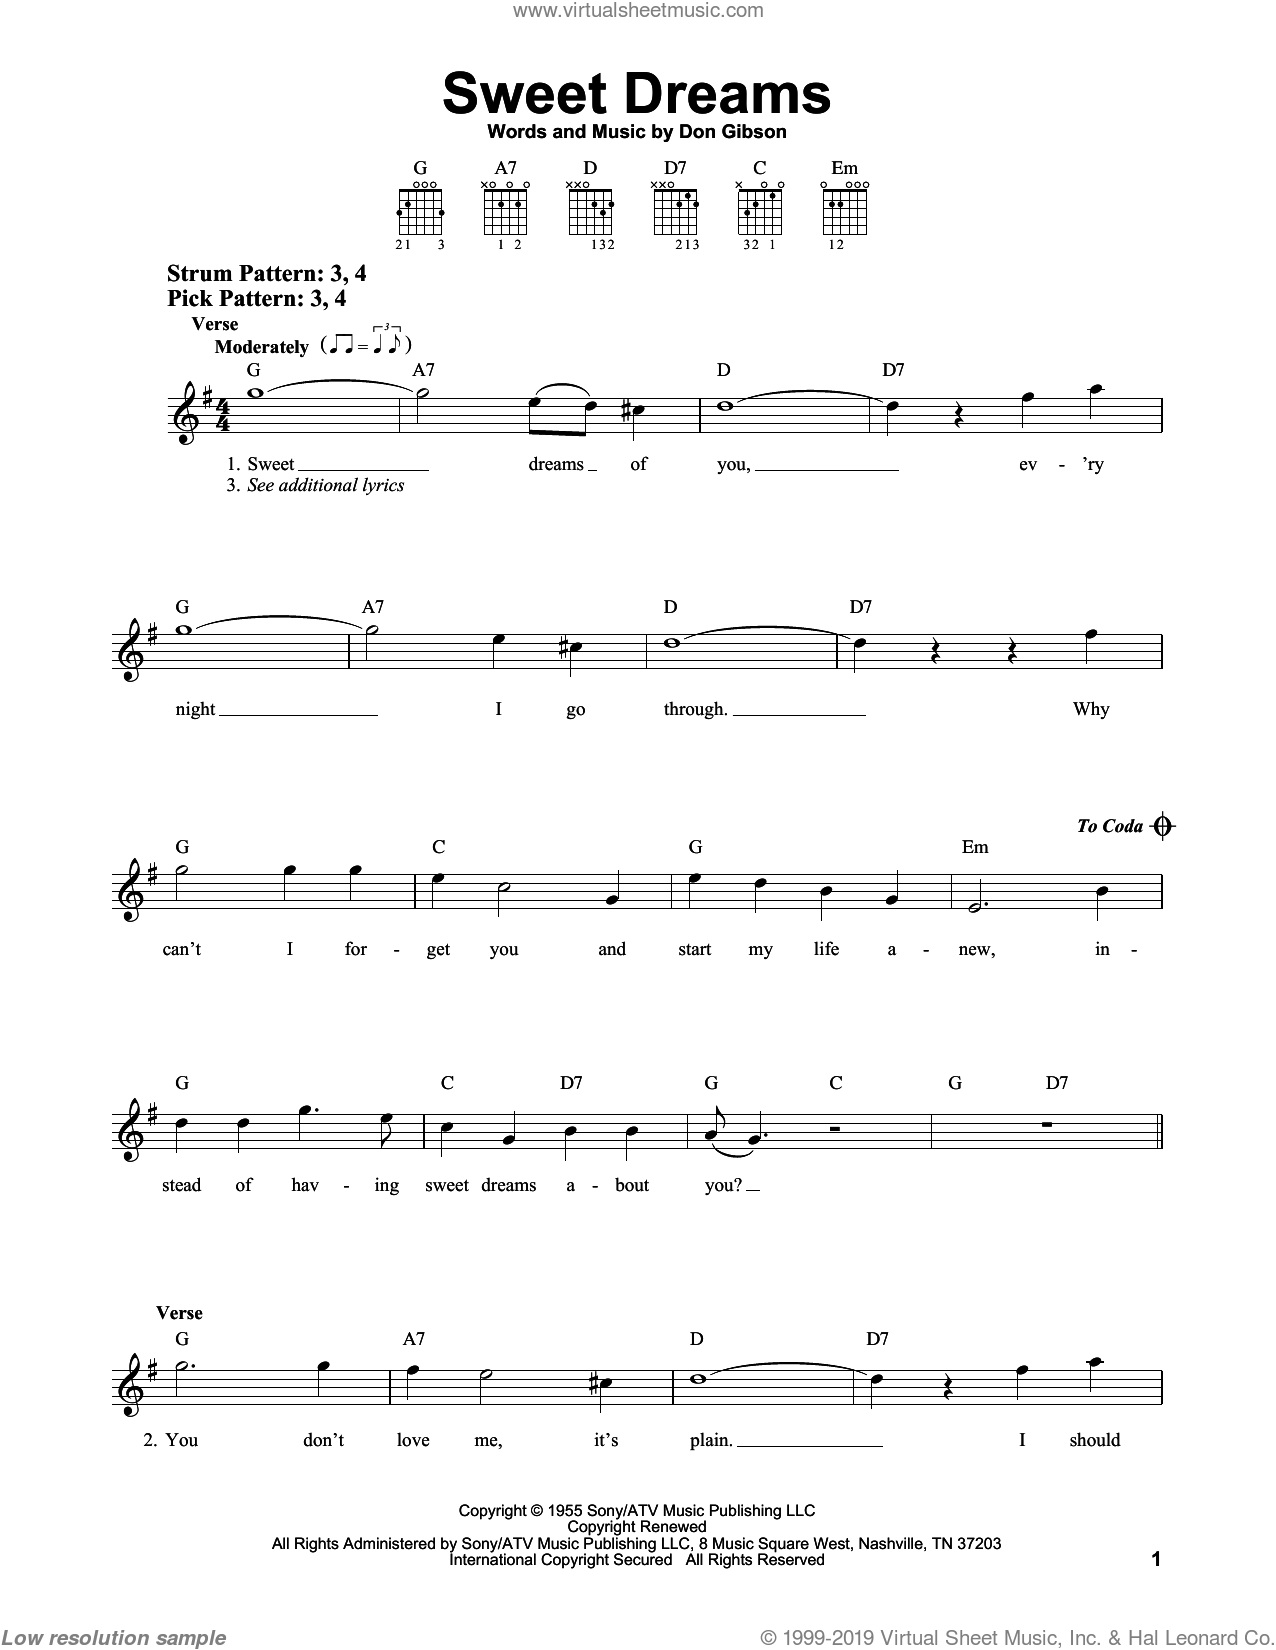 Cline - Sweet Dreams sheet music for guitar solo (chords) [PDF]